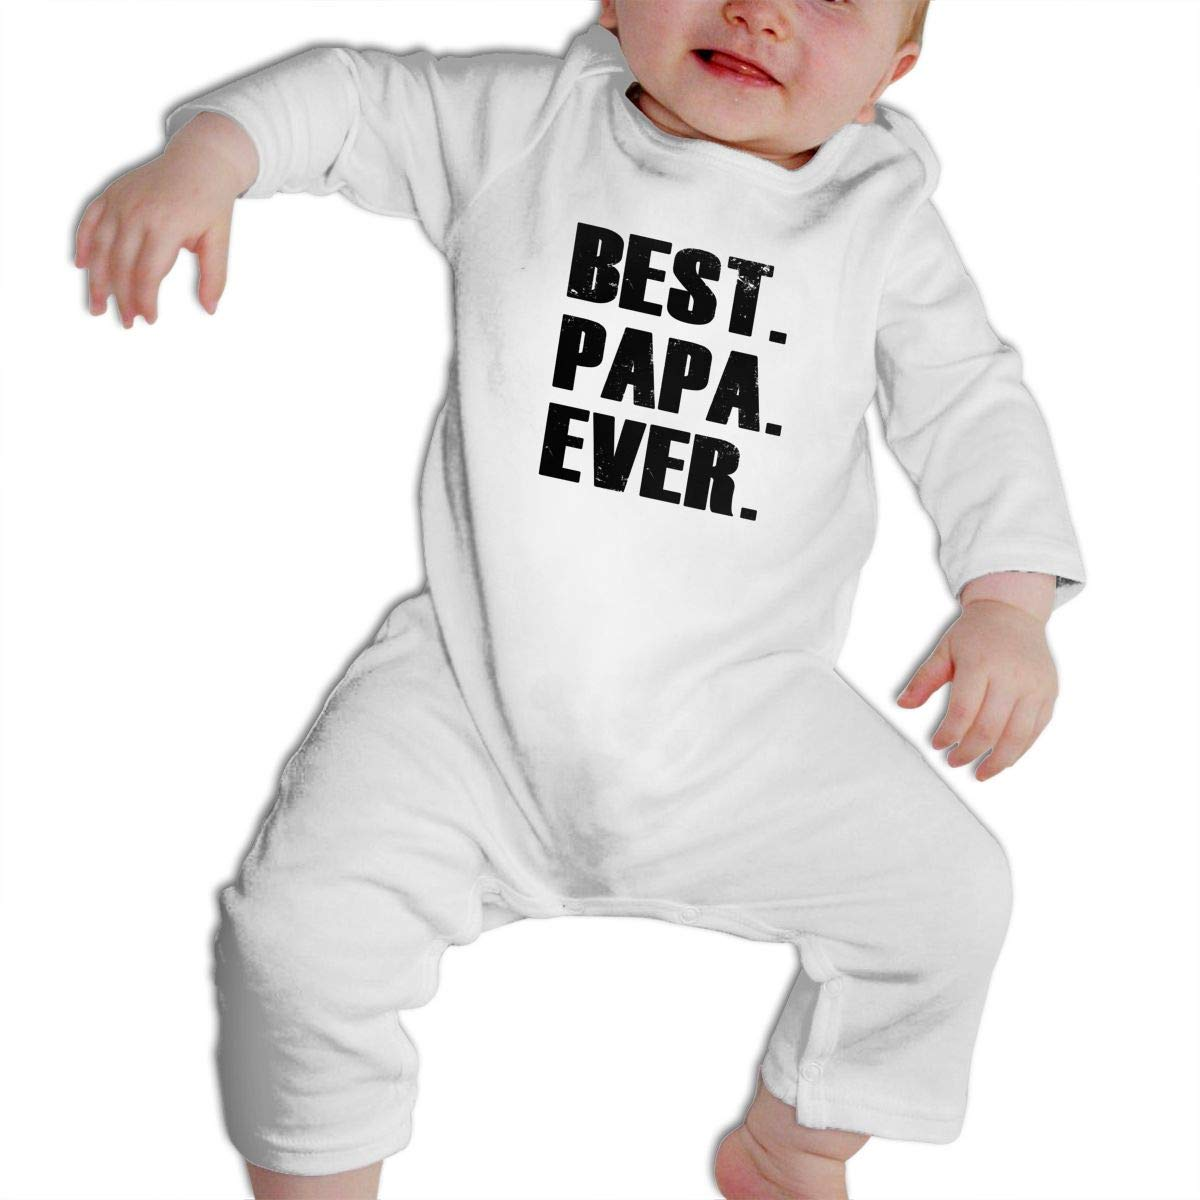 Cami Best. Papa. Ever. Baby Boys Girls Long Sleeve Onesies Infant Bodysuit Baby For 6-24months